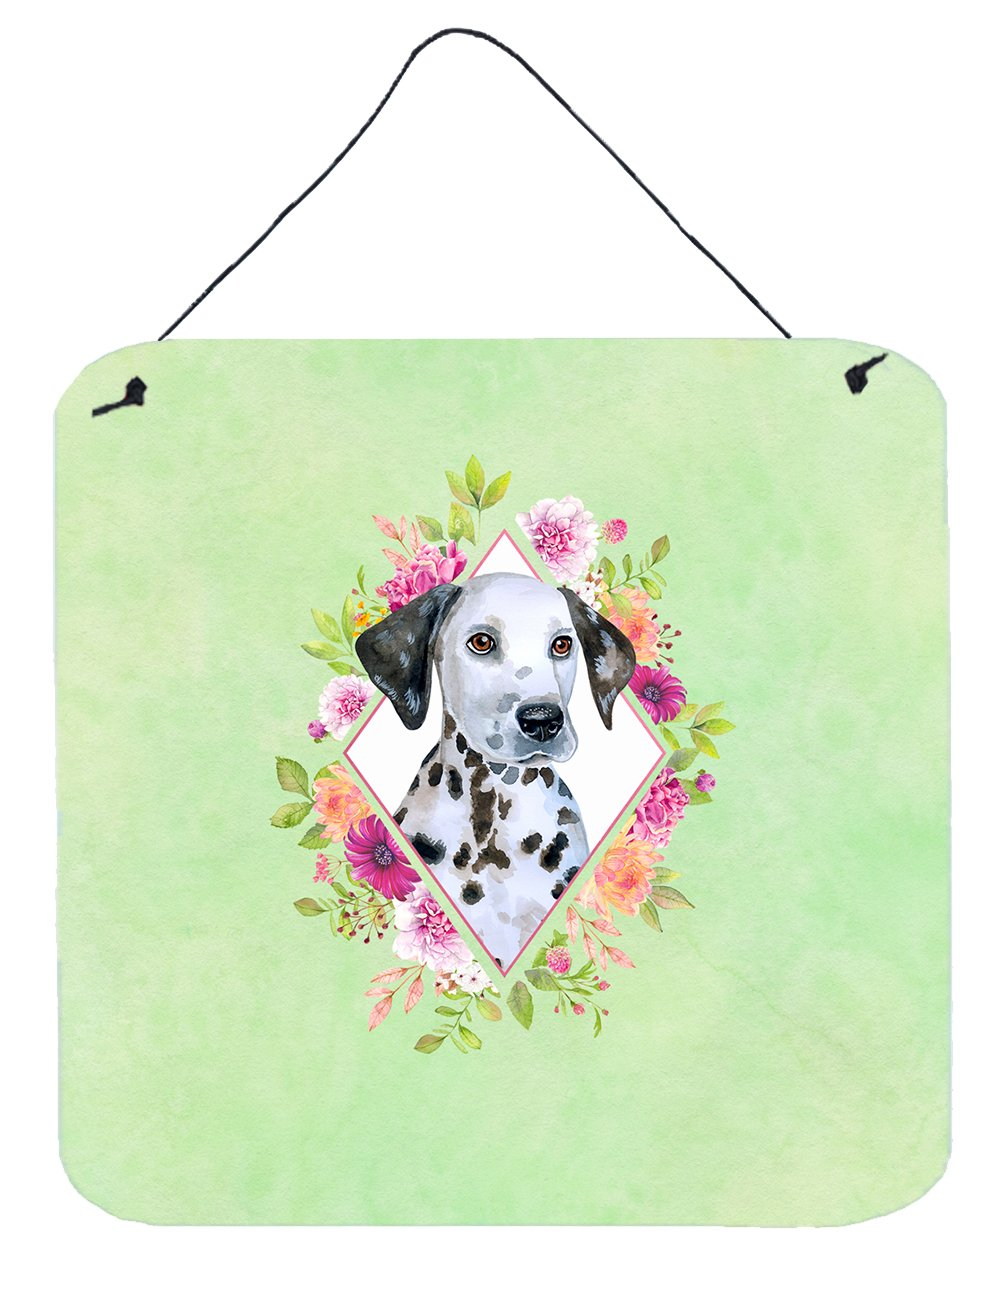 Dalmatian Puppy Green Flowers Wall or Door Hanging Prints CK4296DS66 by Caroline's Treasures